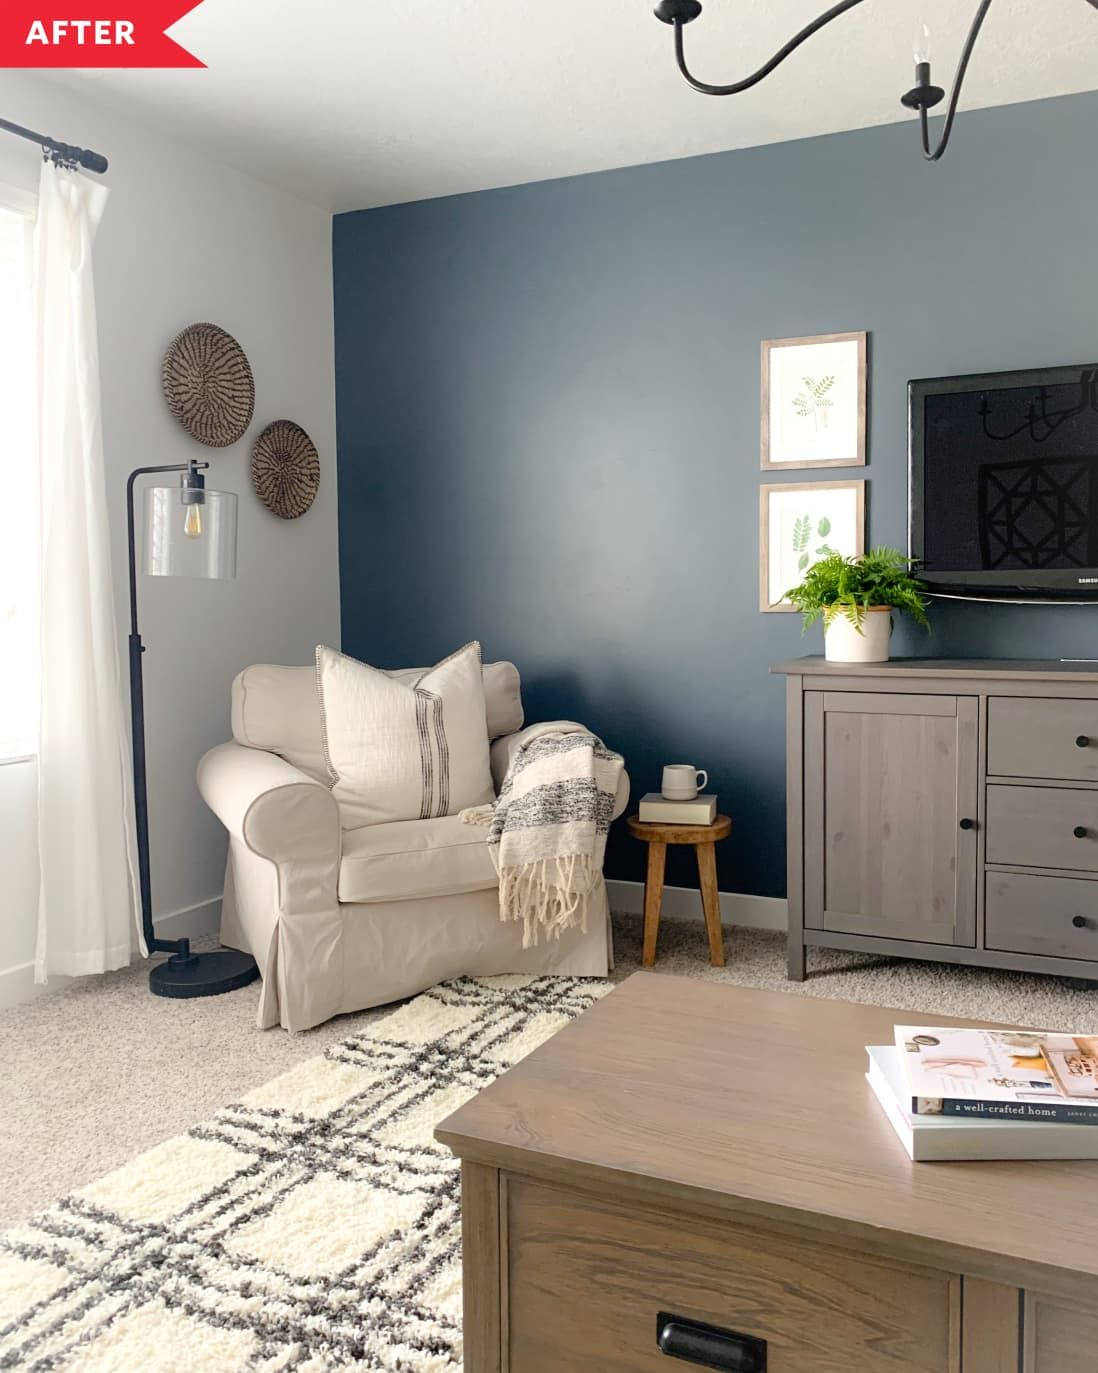 Before and After: This $350 Living Room Refresh Shows the Power of Small Tweaks